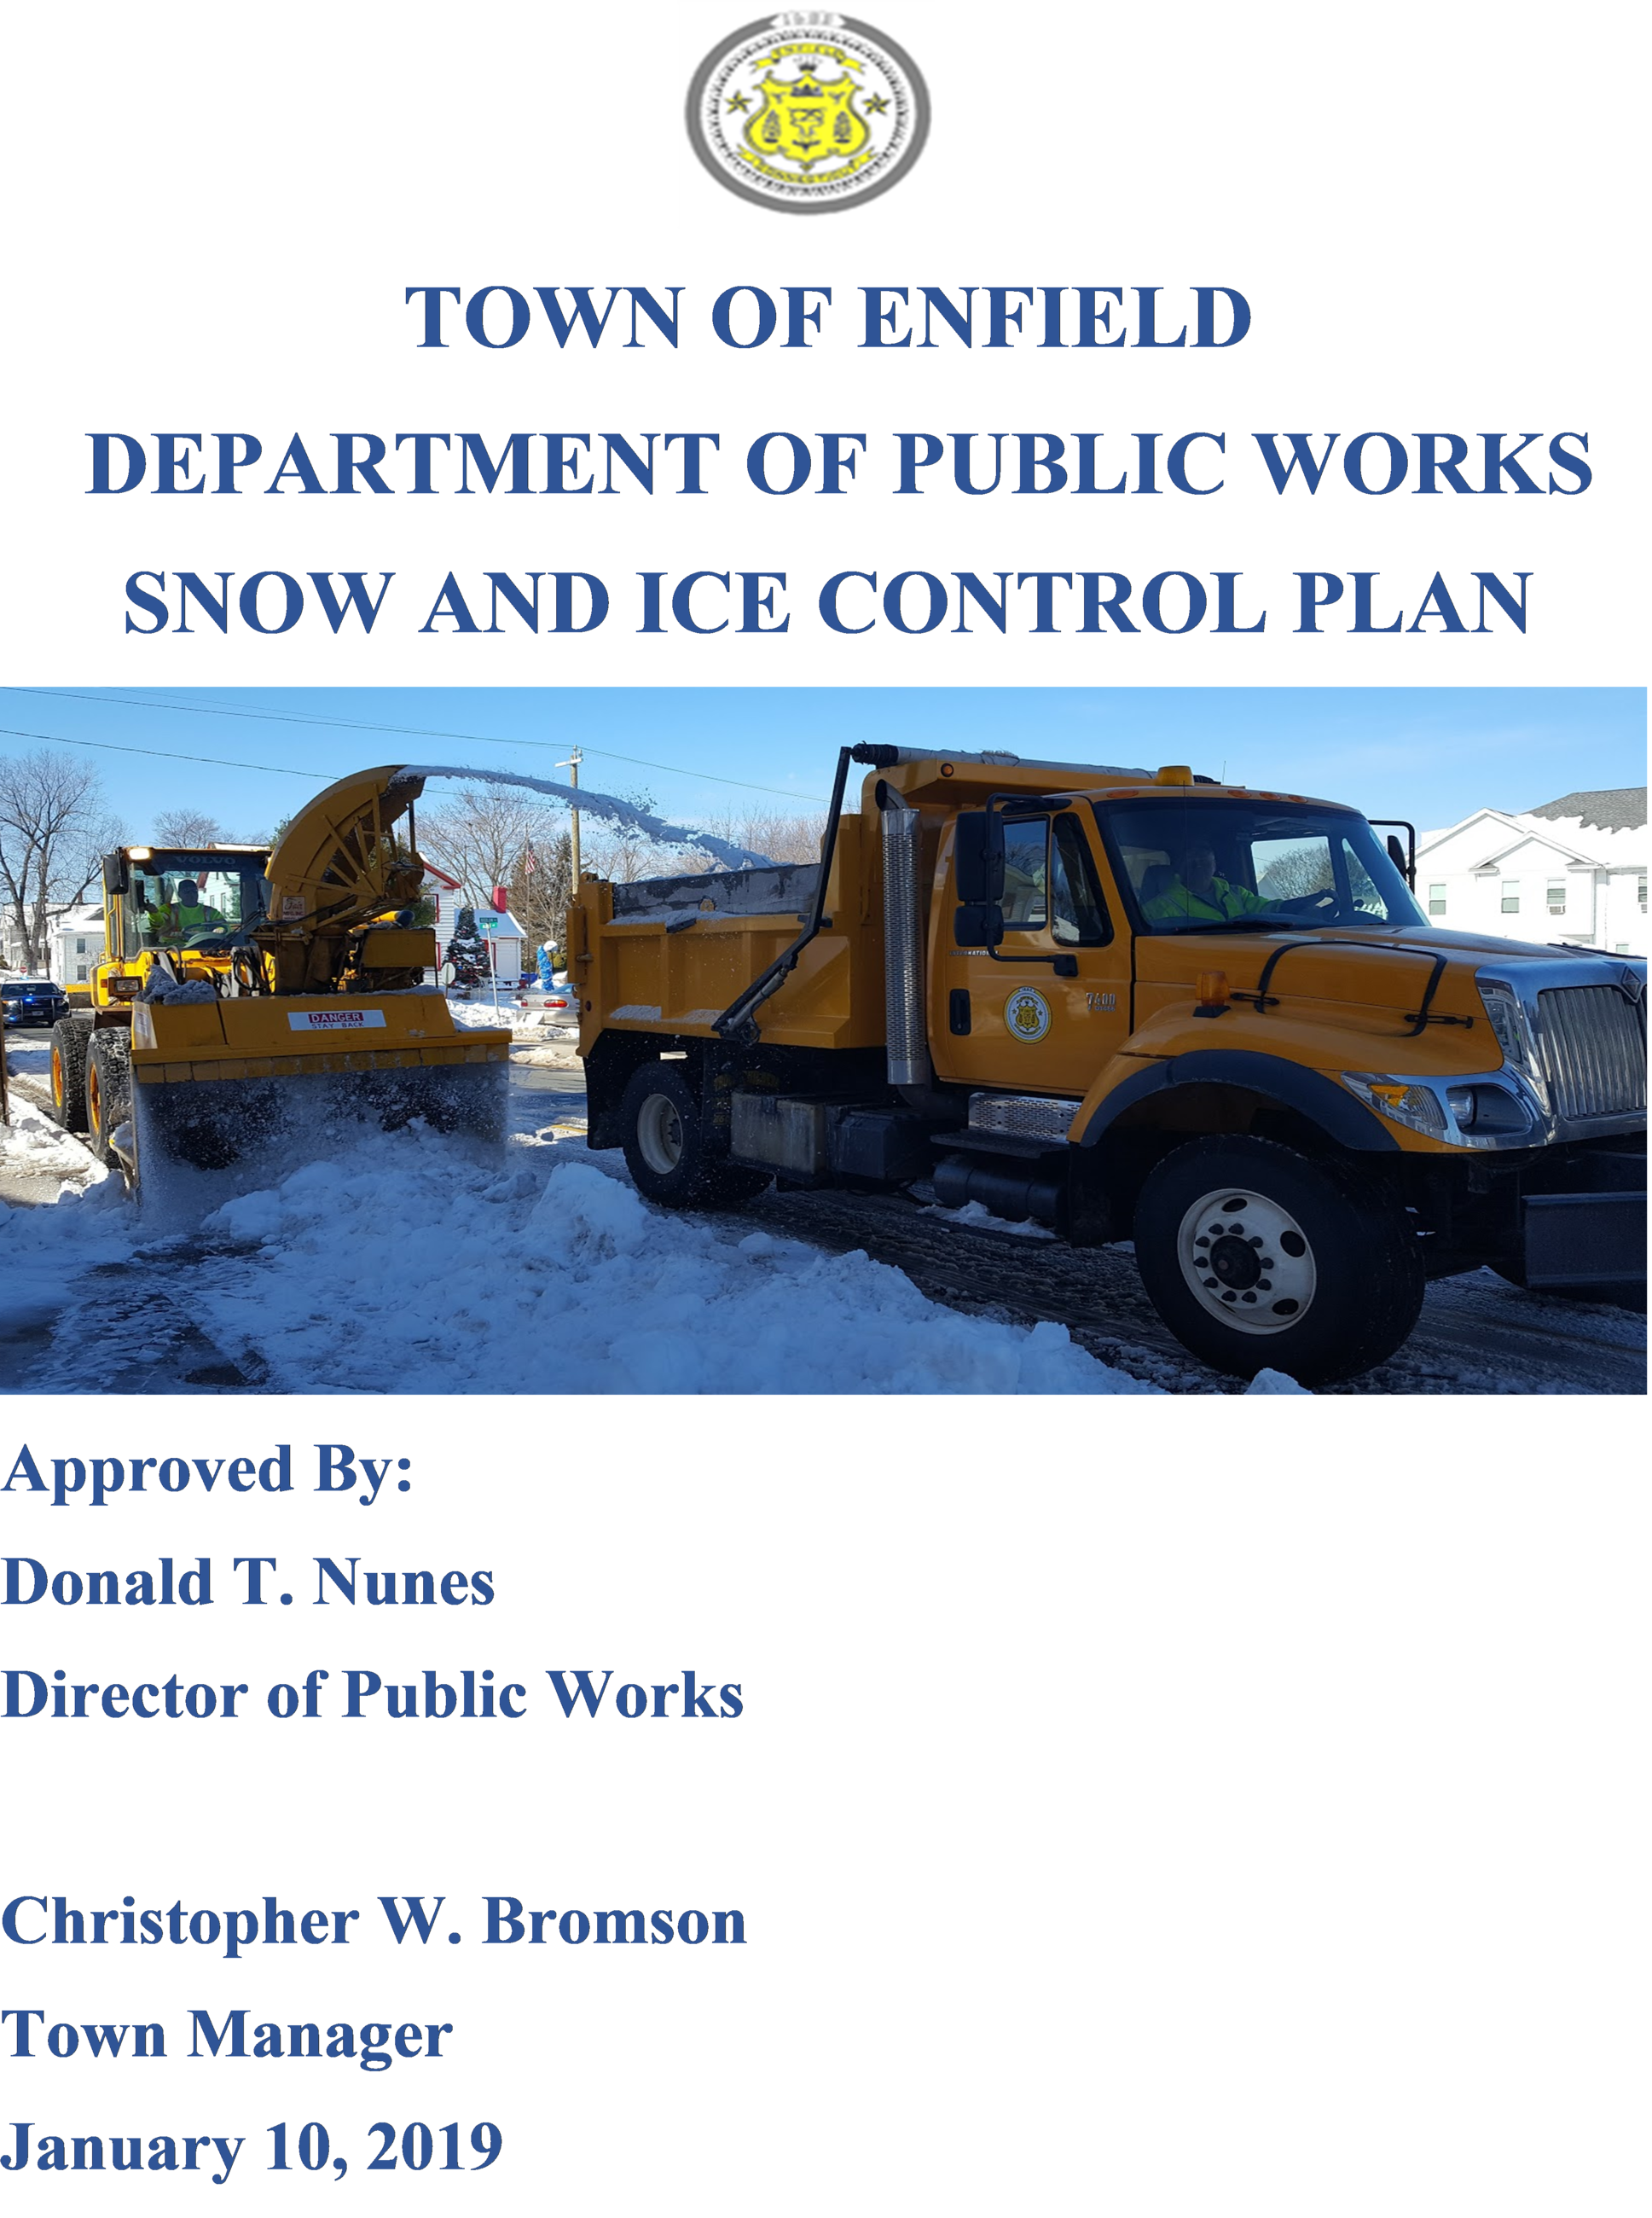 Snow and Ice Control Plan